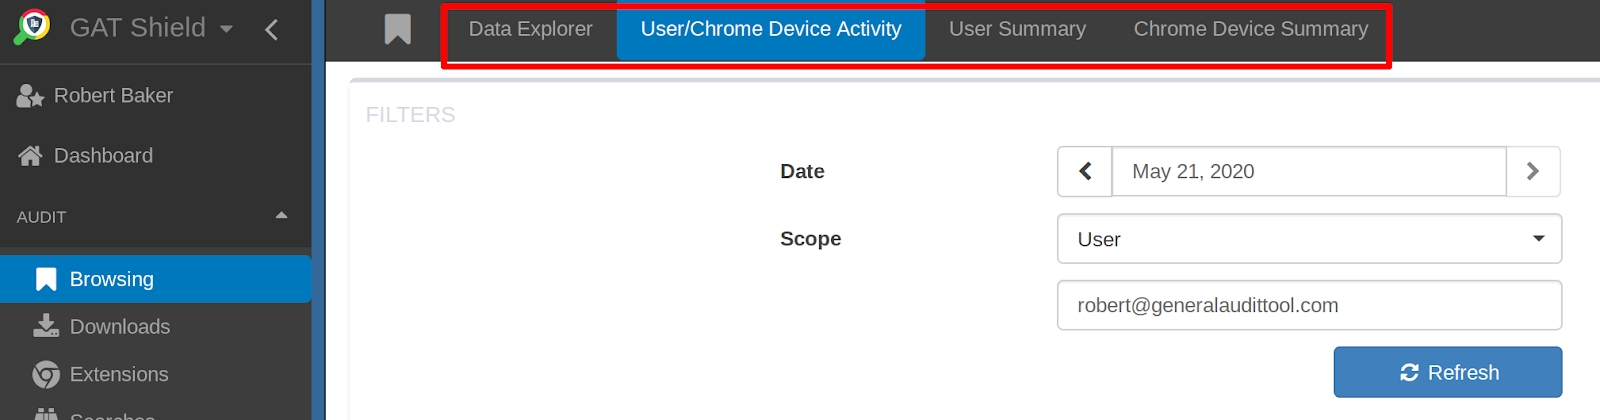 GAT Shield: Browsing Report for Chrome Managed Guest Session Devices 3